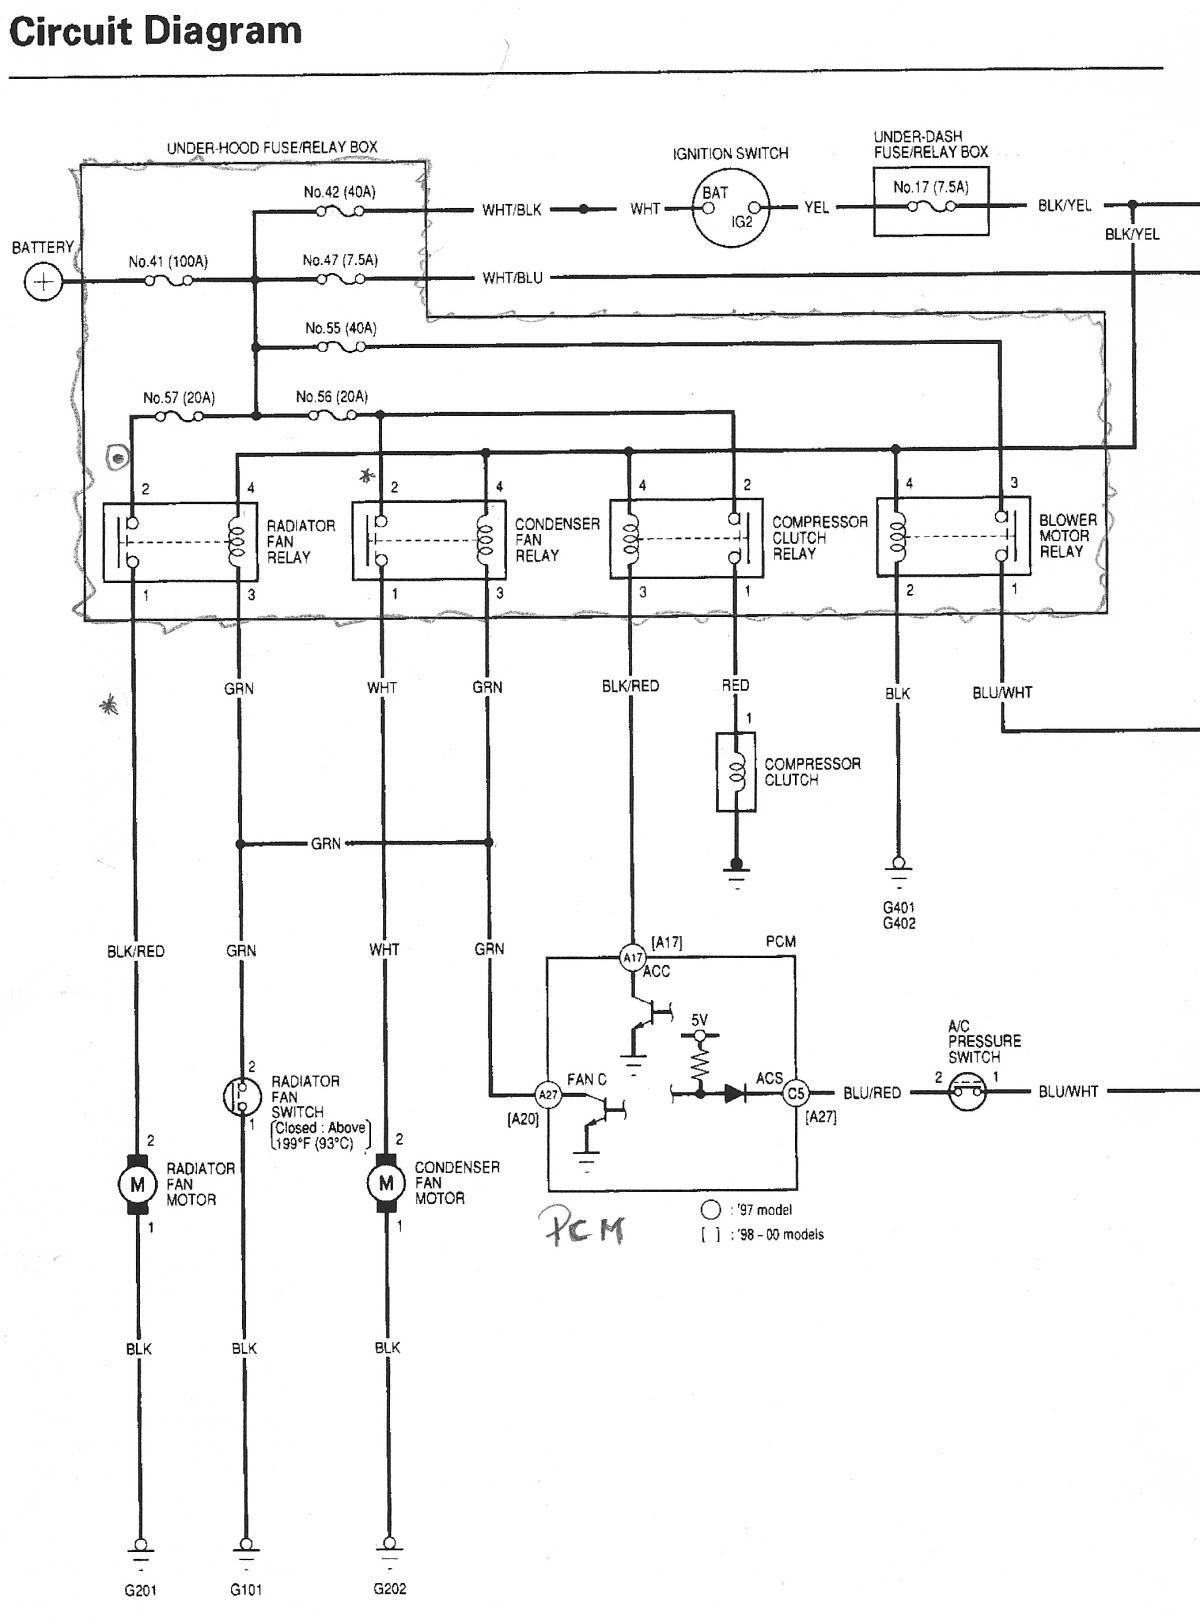 2000 honda 300ex headlight diagram, headlight wire harness diagram, honda civic wiring schematics, relay wiring diagram, three prong plug diagram, mazda 3 headlight assembly diagram, honda motorcycle headlight circuit diagram, honda cbr600rr wiring-diagram, on 2005 honda jazz headlight wiring diagram